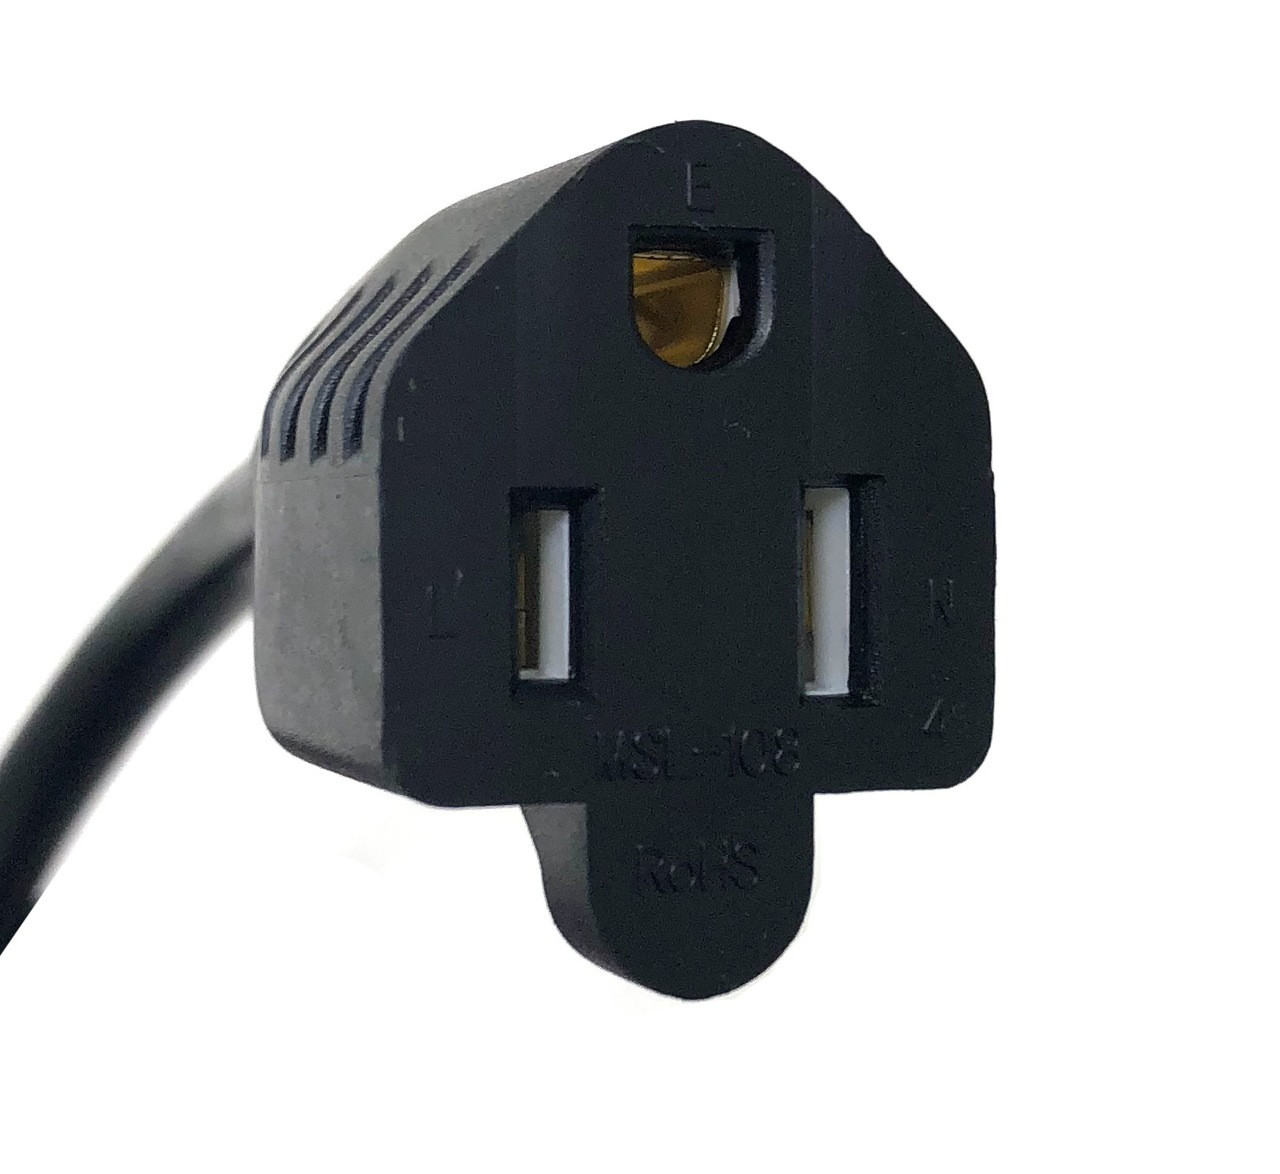 1ft 1-to-2 Y Power Cord Splitter